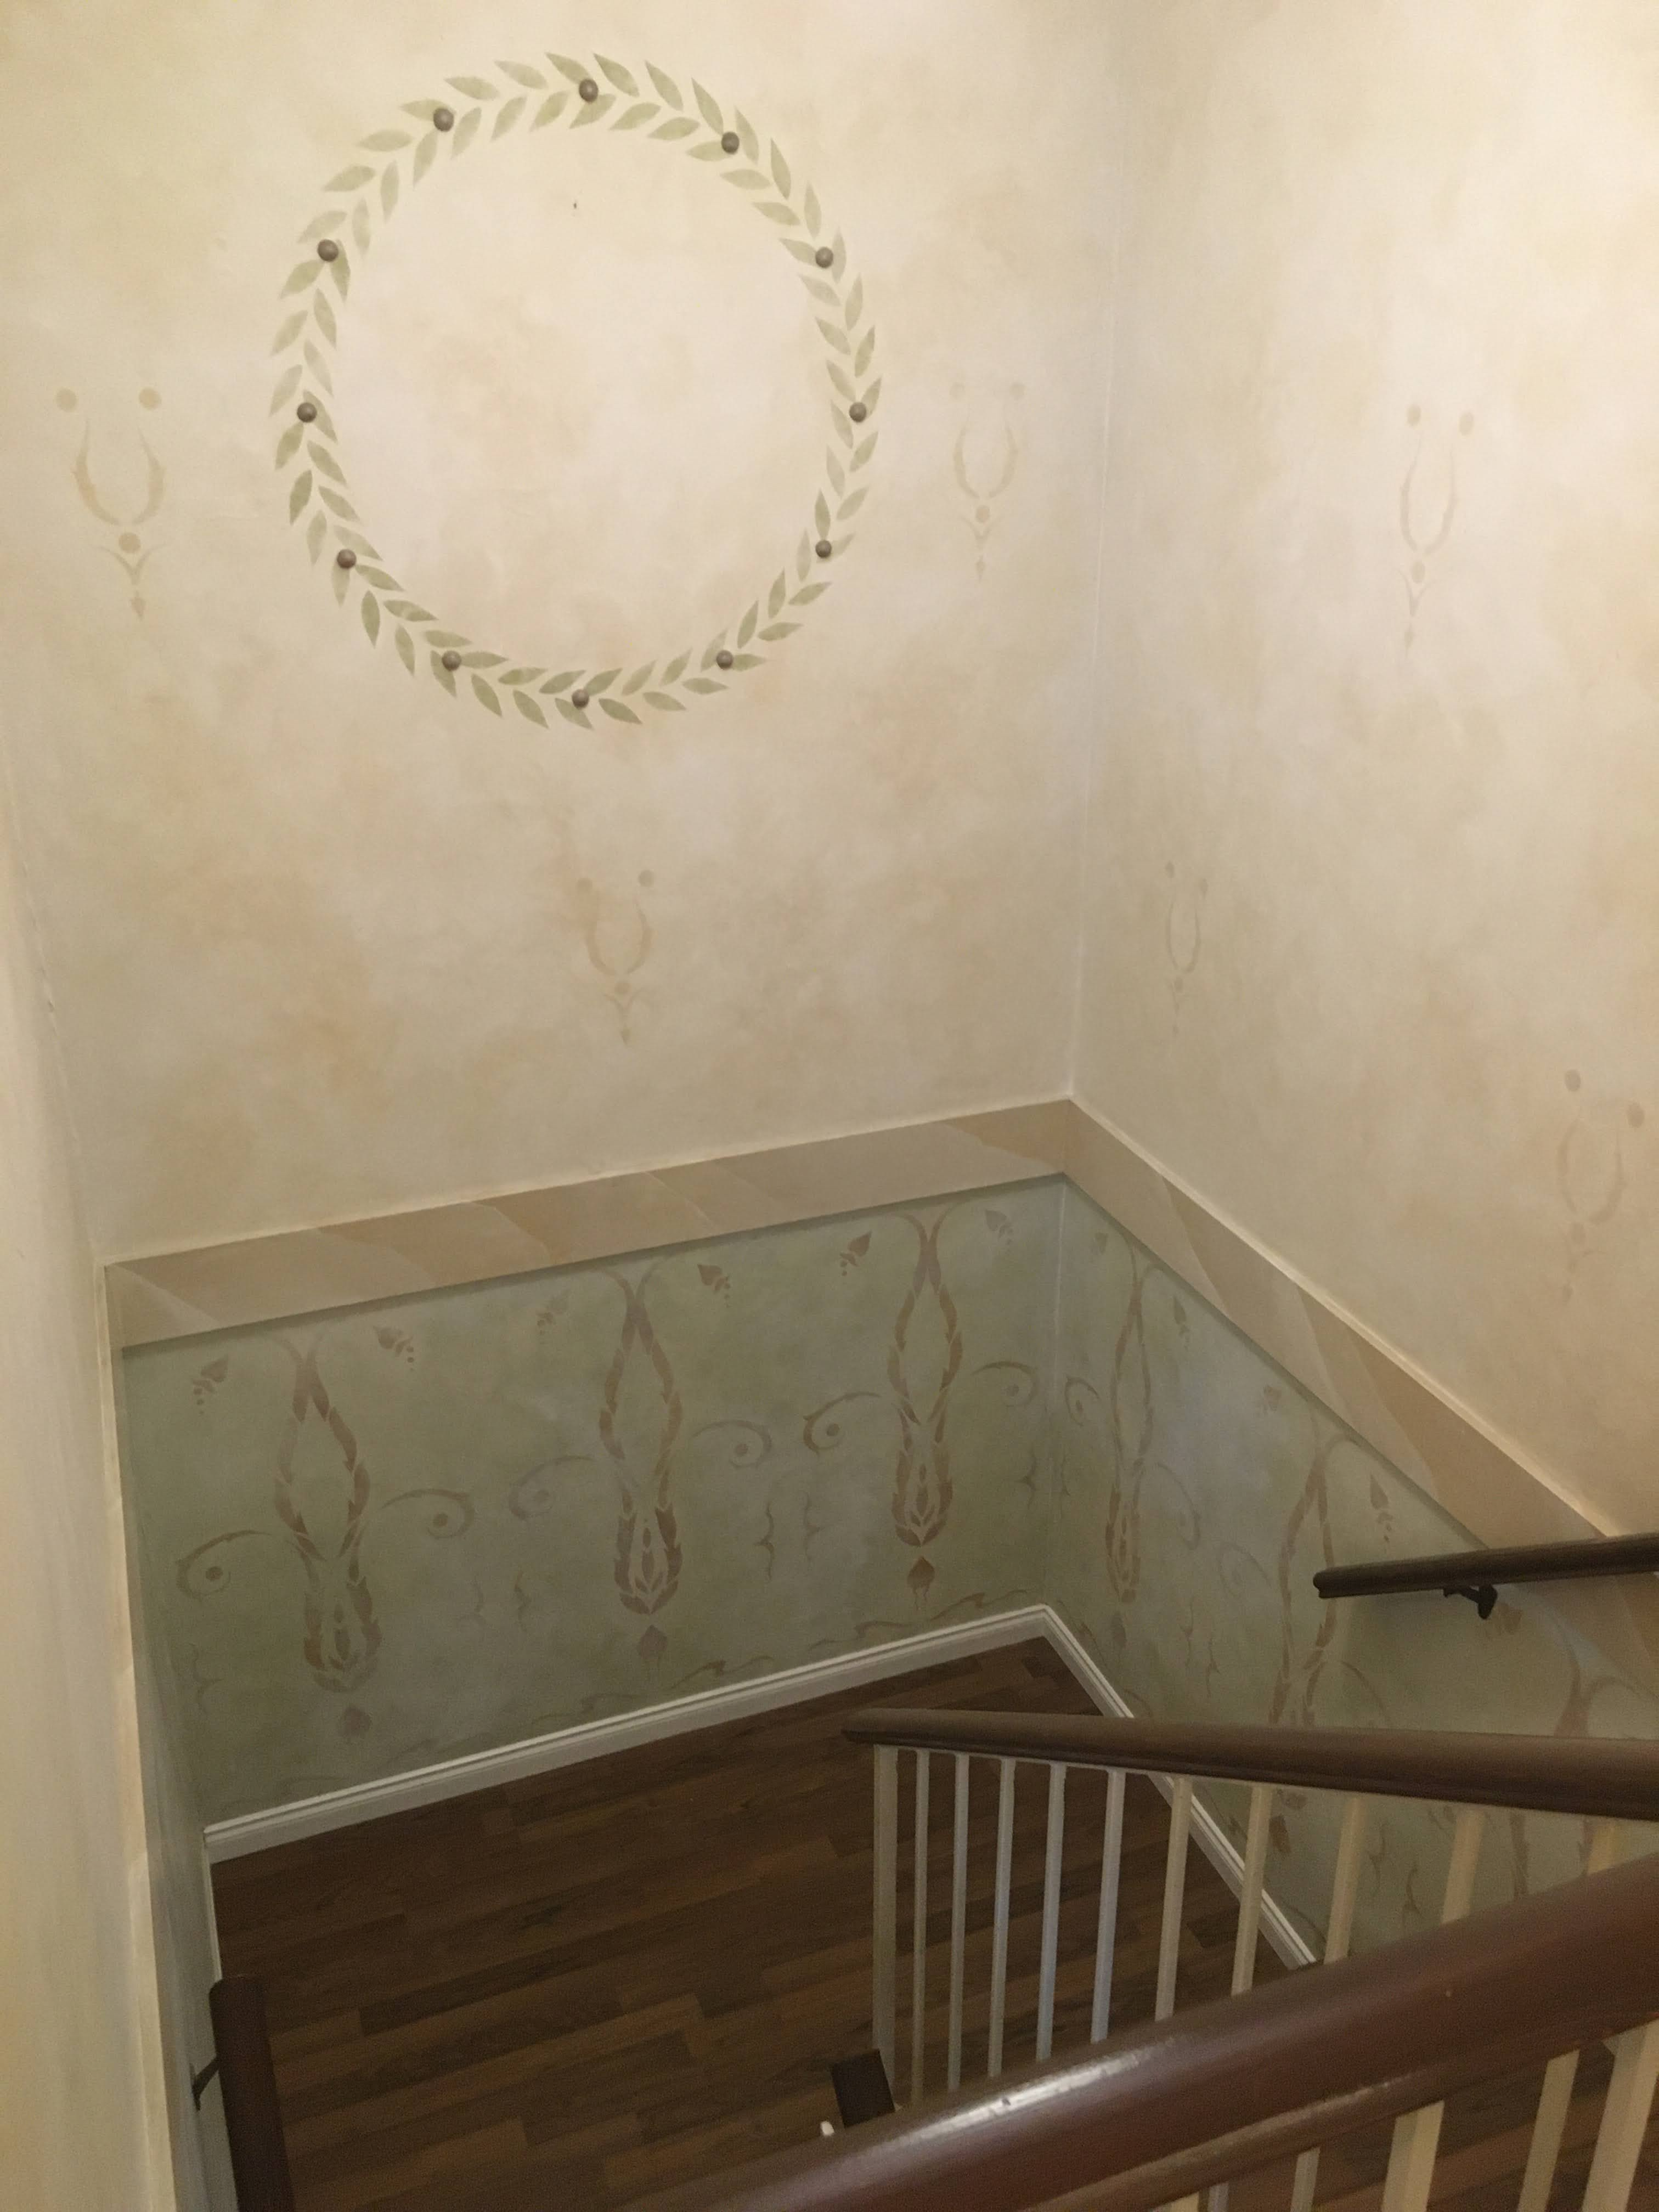 Stairwell with wall painting